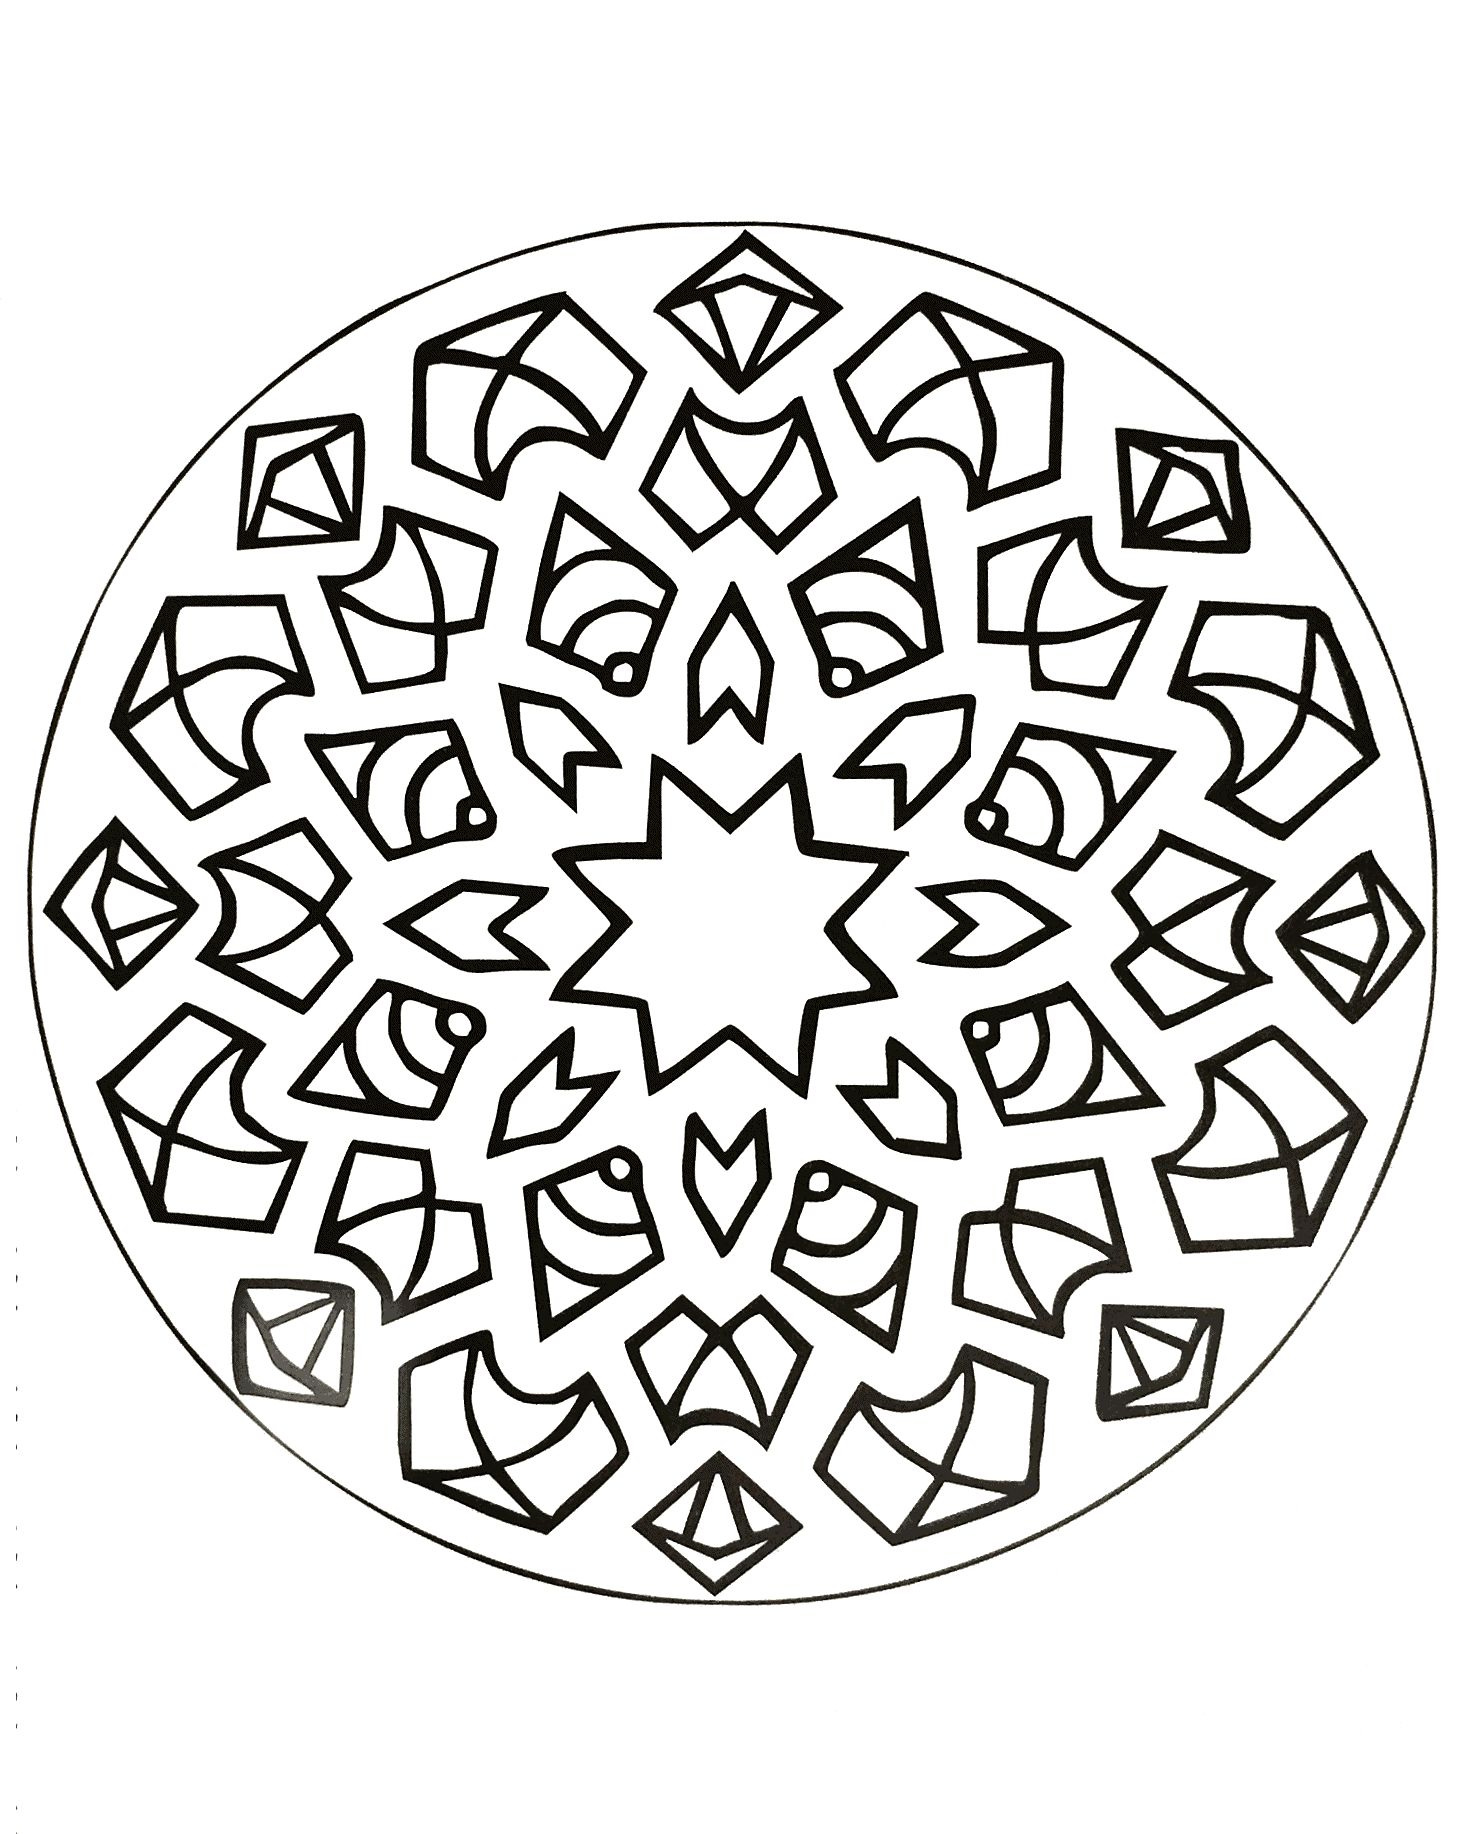 Adult coloring books for pc download - Here You Can Download All The Mandalas To Increase Your Concentration At No Cost By Colouring Them In Either By Hand Or On Your Pc You Will Find